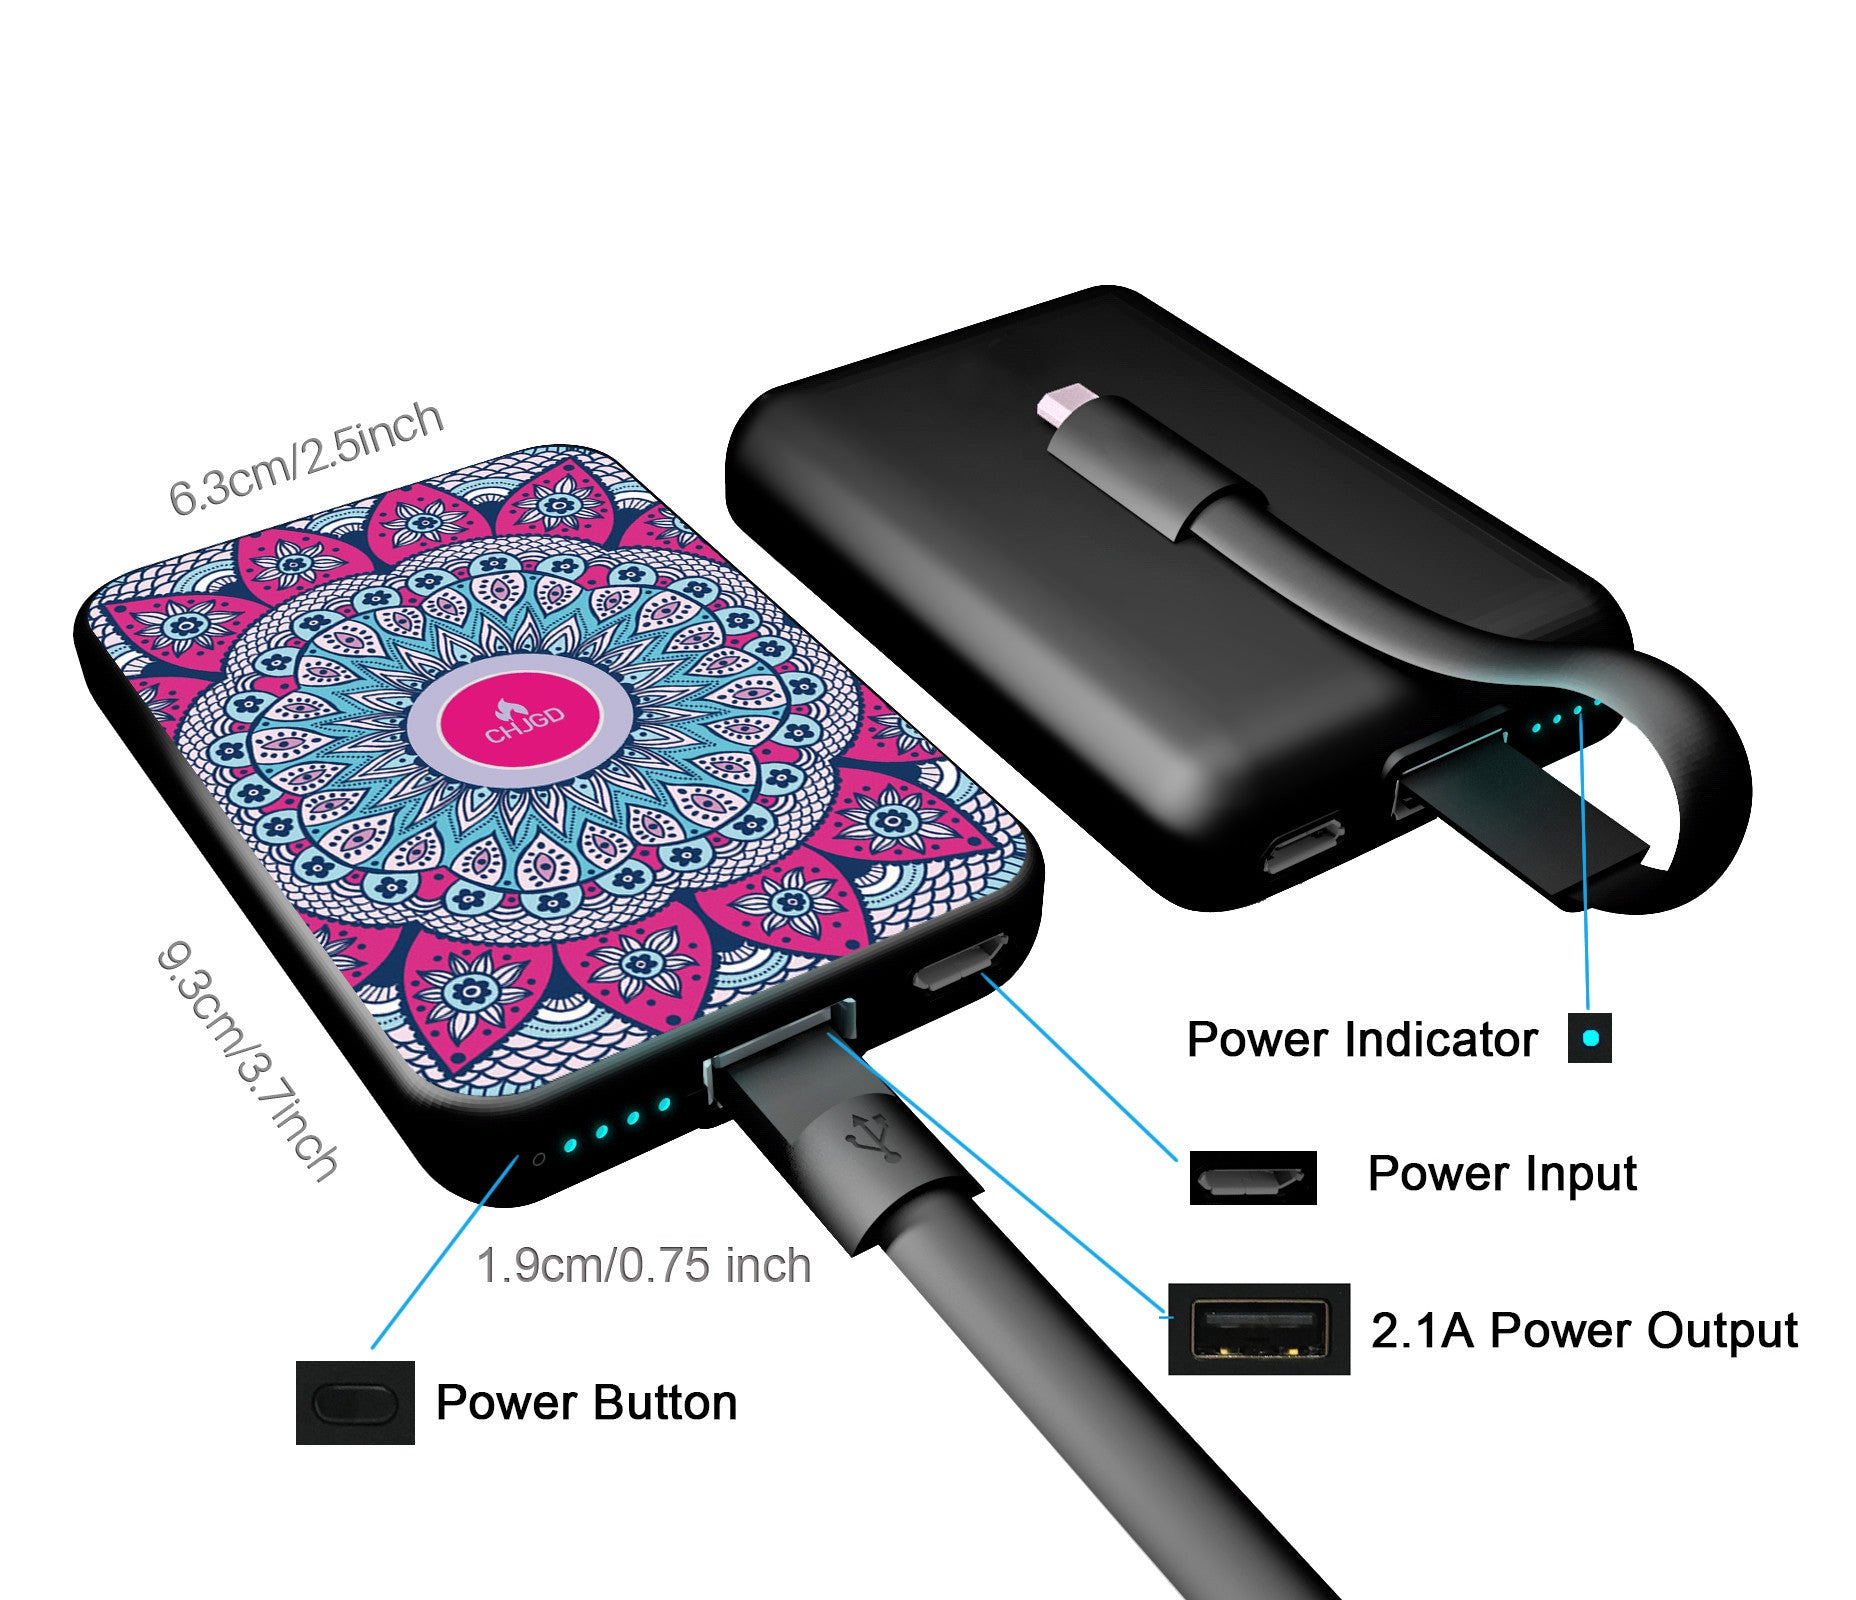 World's Smallest 10,000 mAh Power Bank - CHJGD Ultracompact (Sunflower Mosaic)